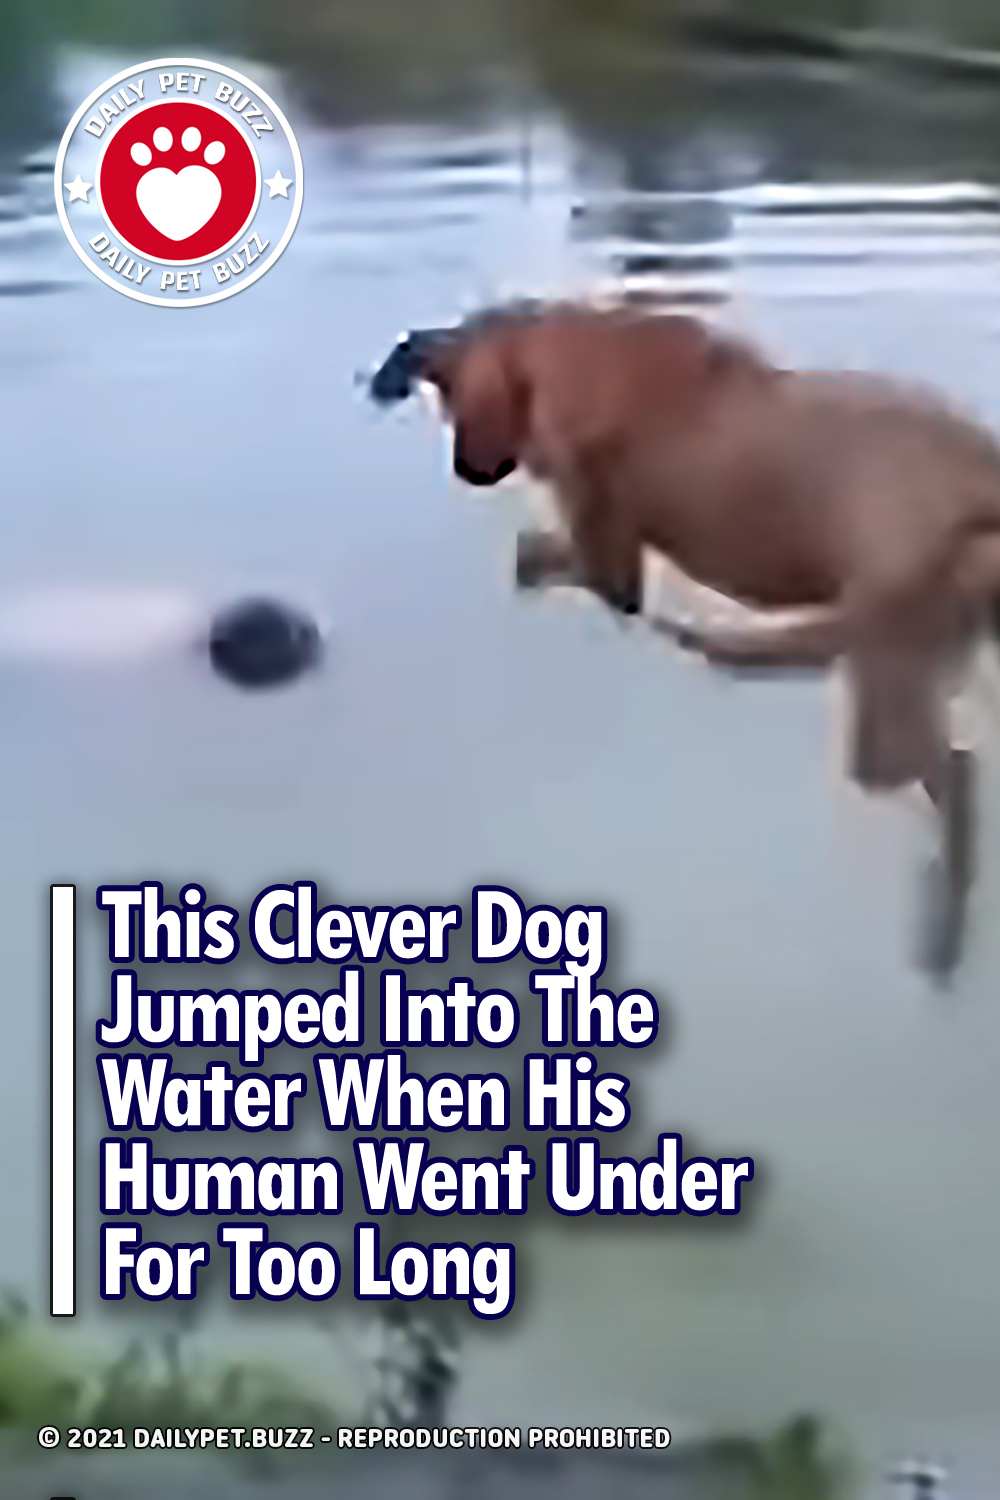 This Clever Dog Jumped Into The Water When His Human Went Under For Too Long